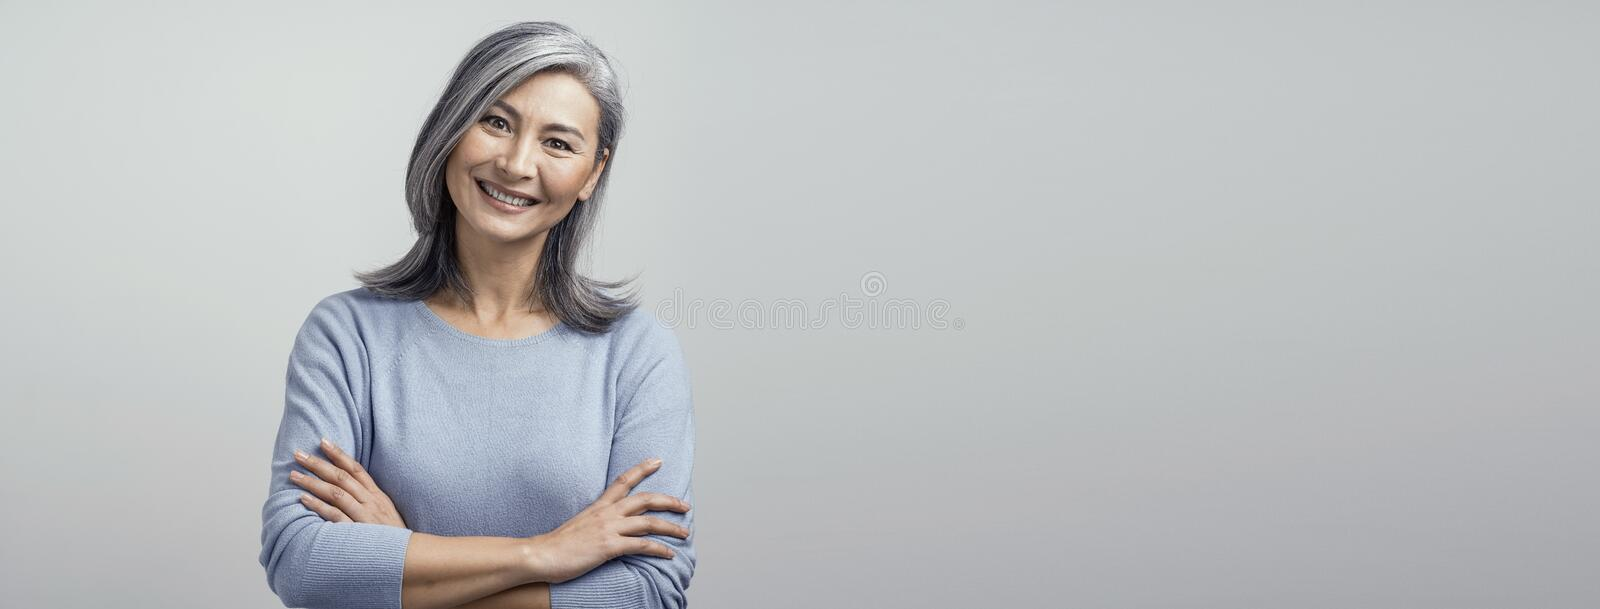 Smiling Asian senior woman with crossed arms royalty free stock images